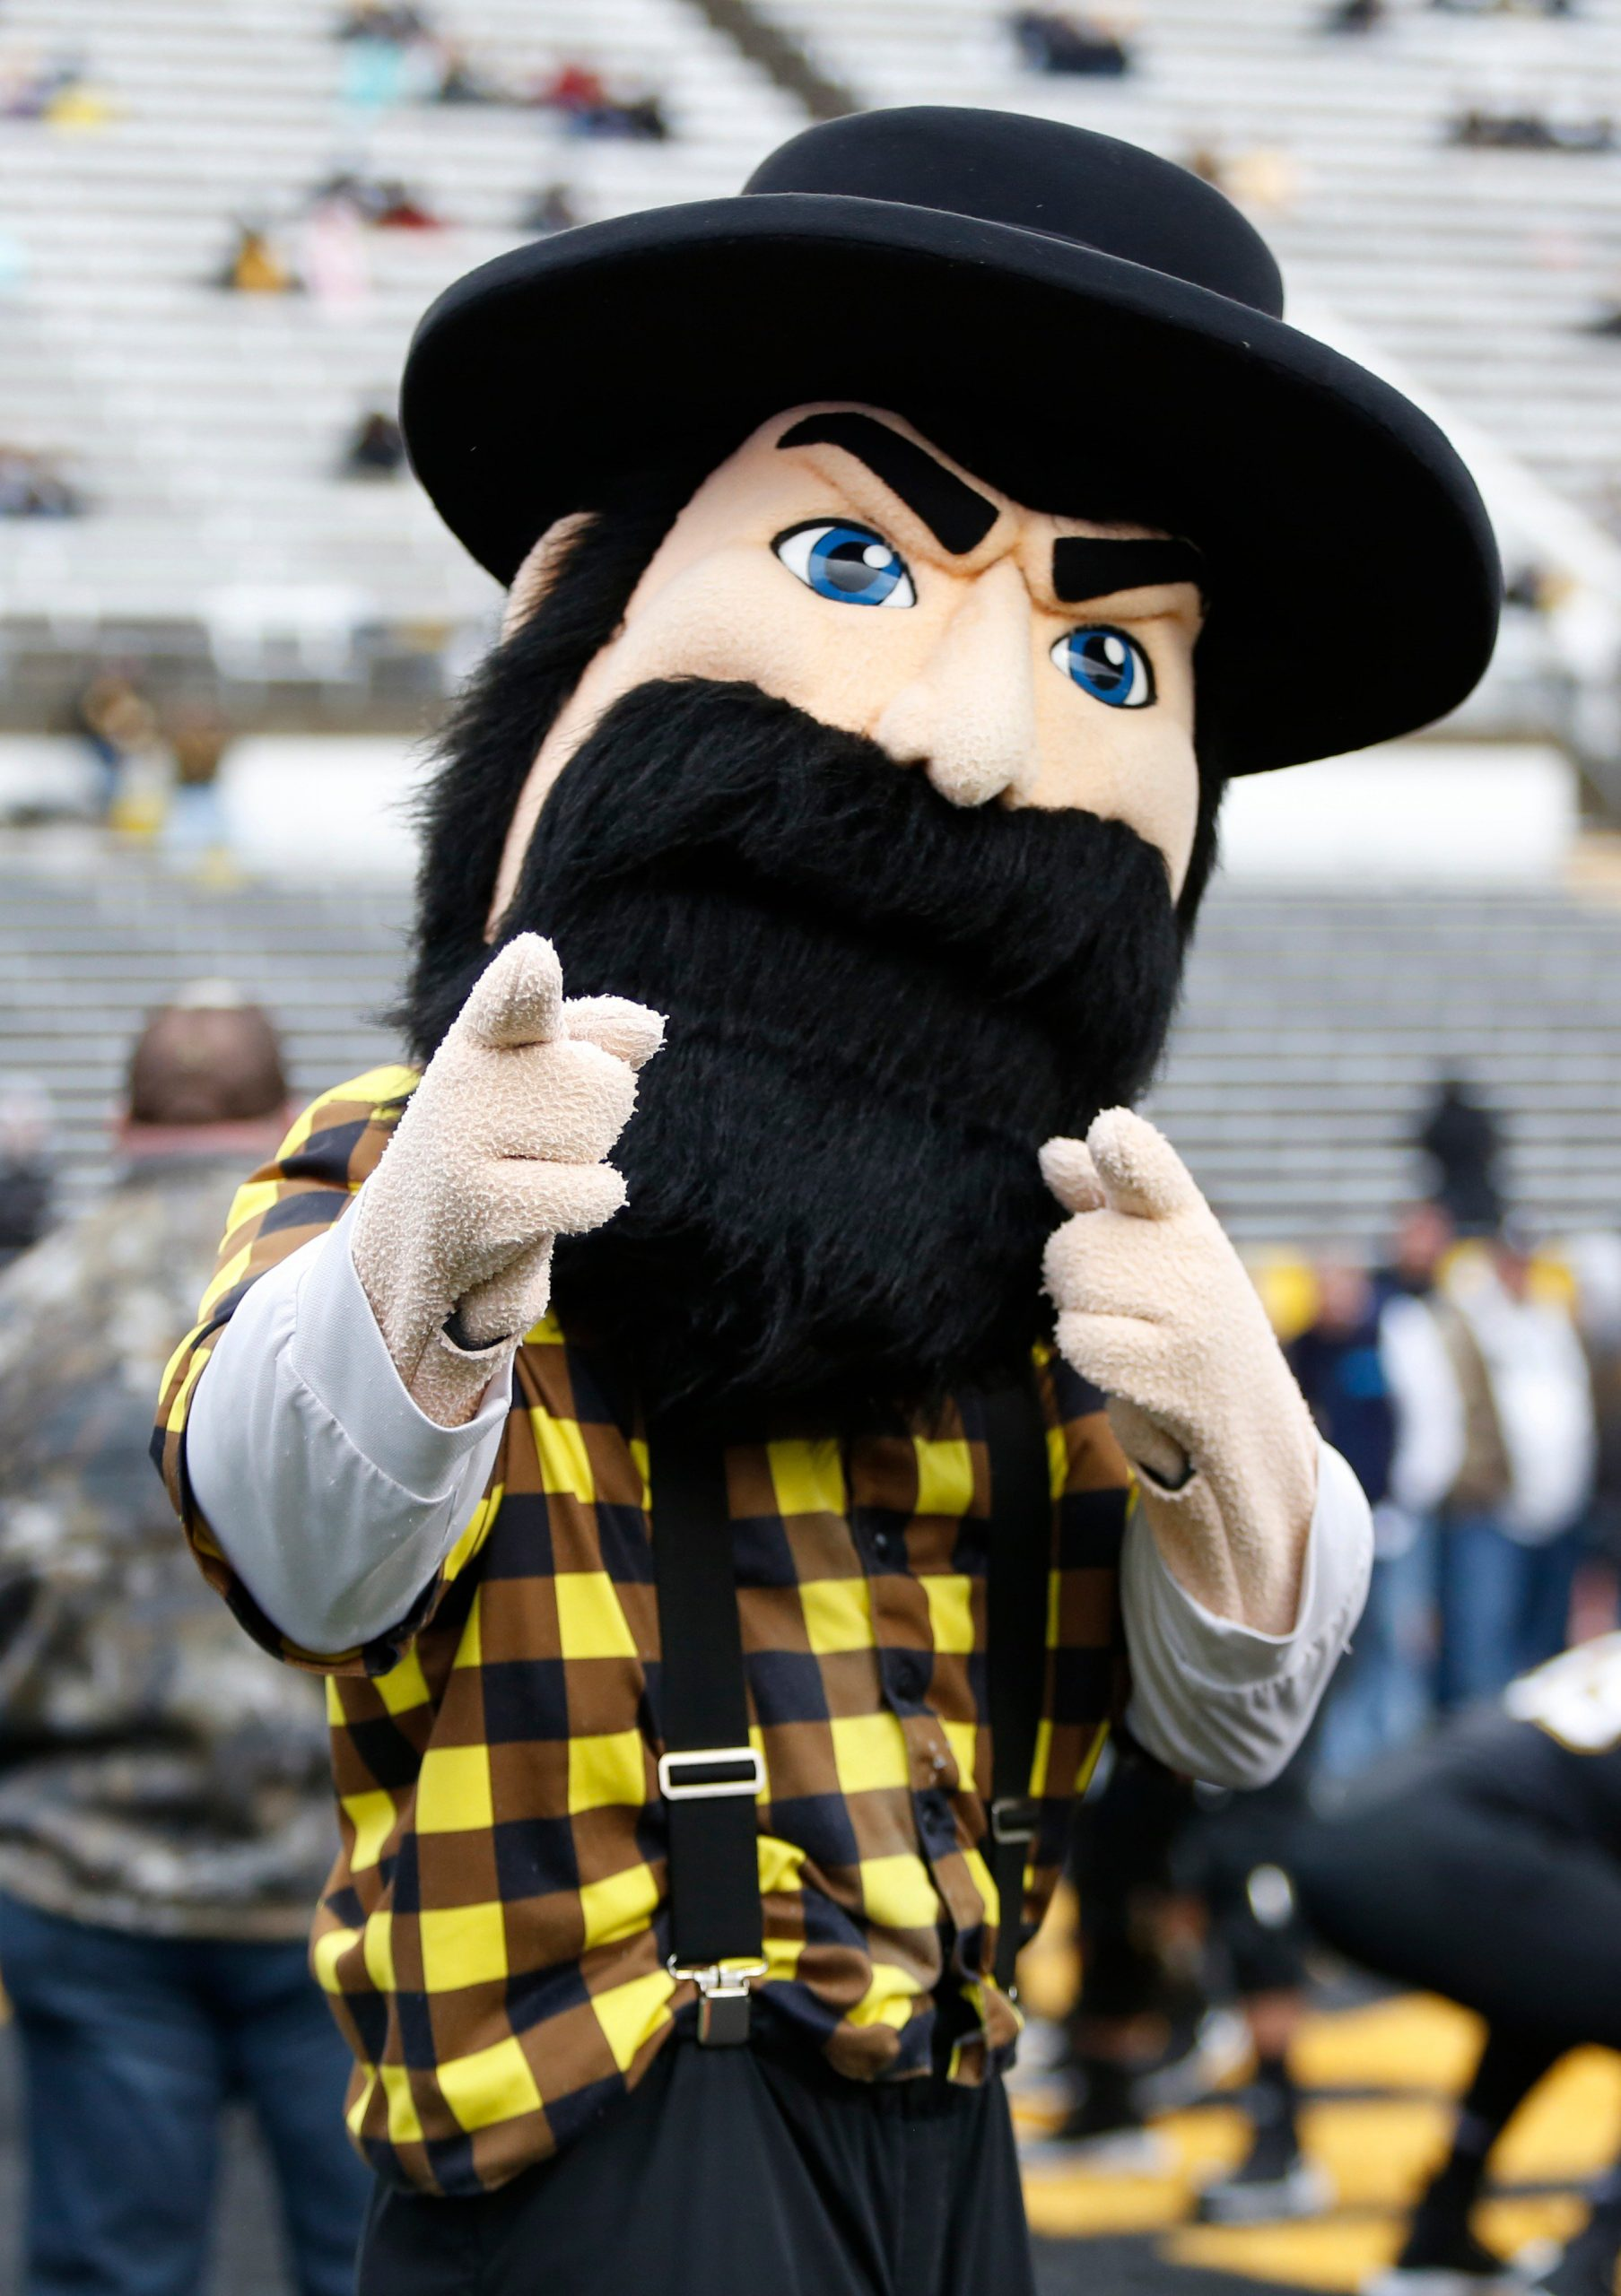 Tradiciones y mascotas: Appalachian State Mountaineers